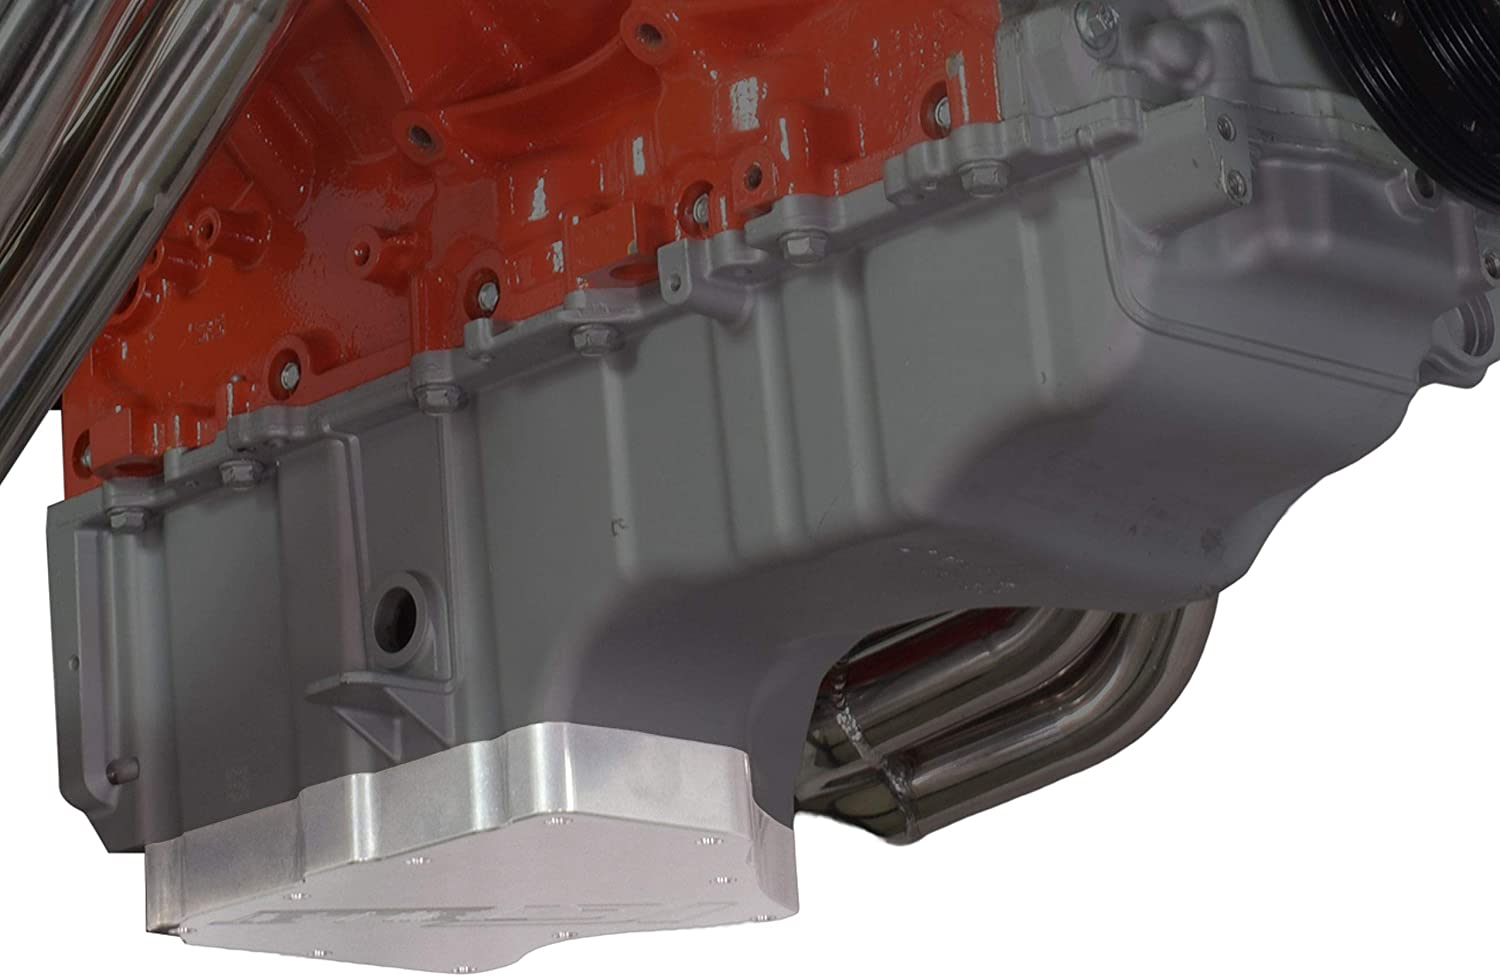 ICT Billet LT Truck Gen V Billet Lower Oil Pan L83 L86 Low Profile 2014-2018 Swap Extra Ground Clearance Designed and Manufactured in the USA bare aluminum 551120